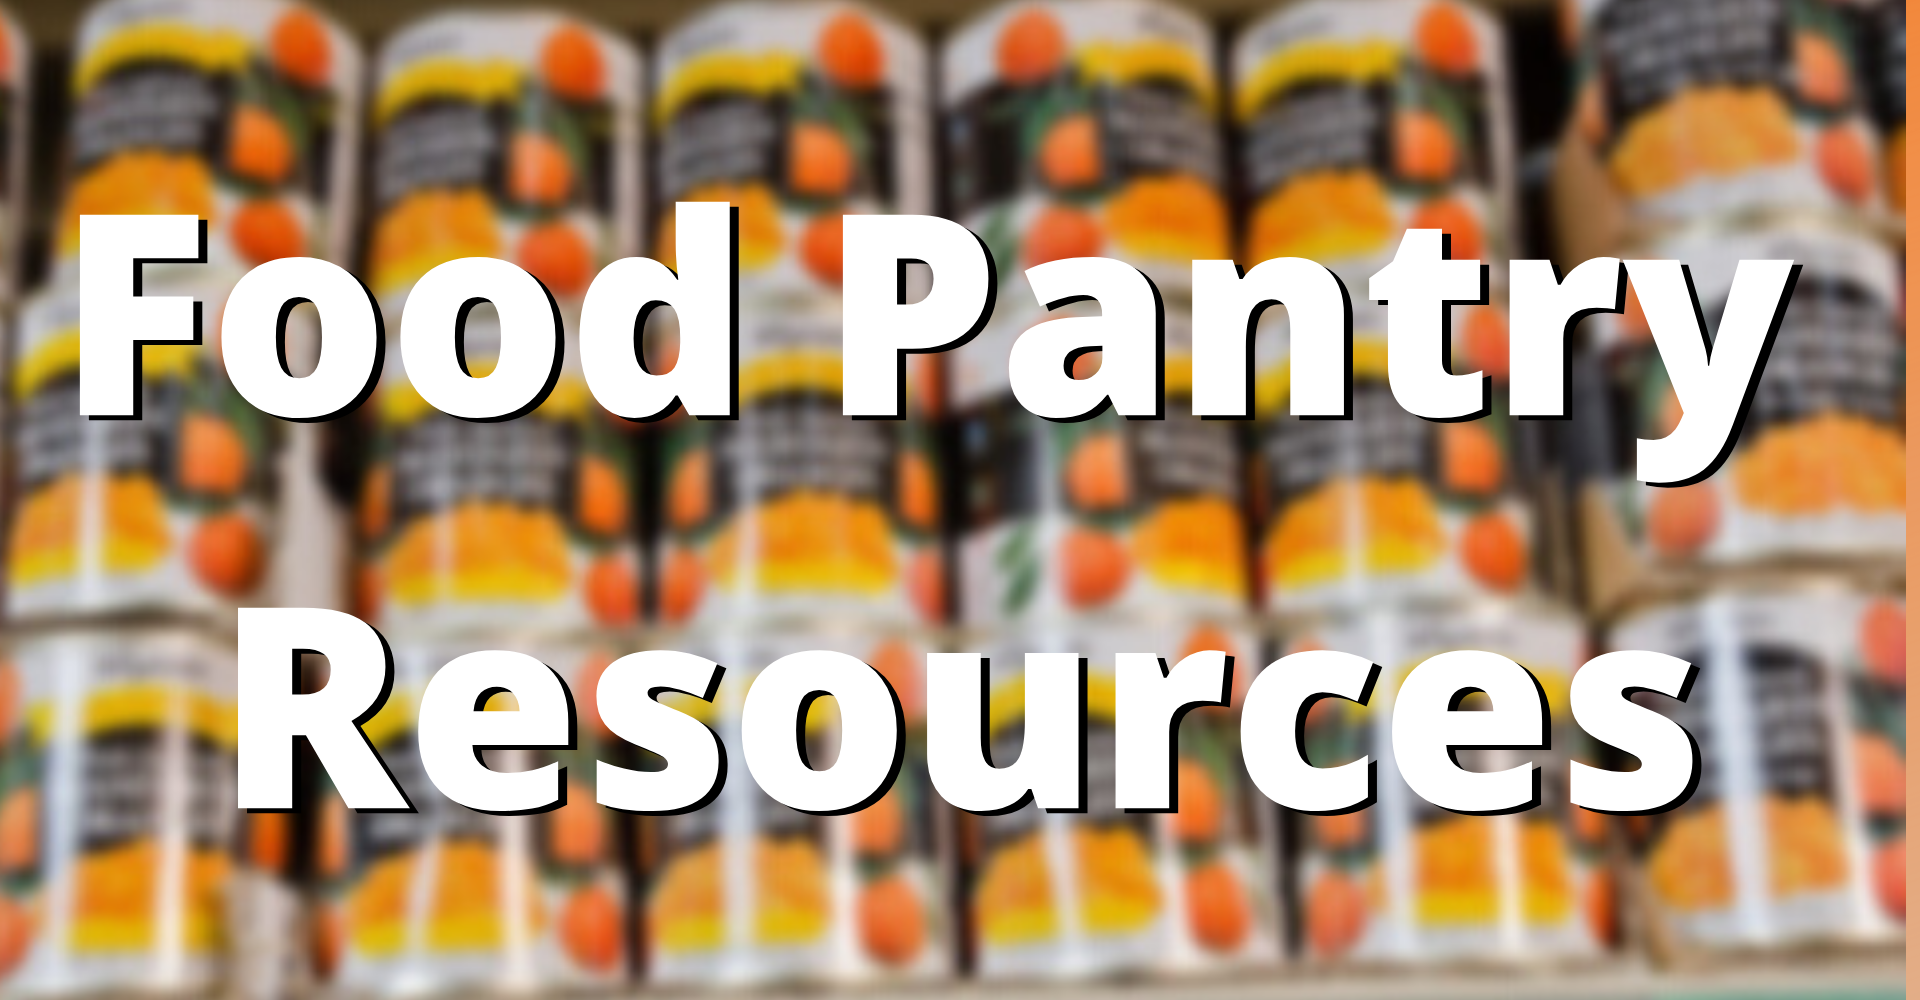 Food Pantry Resources